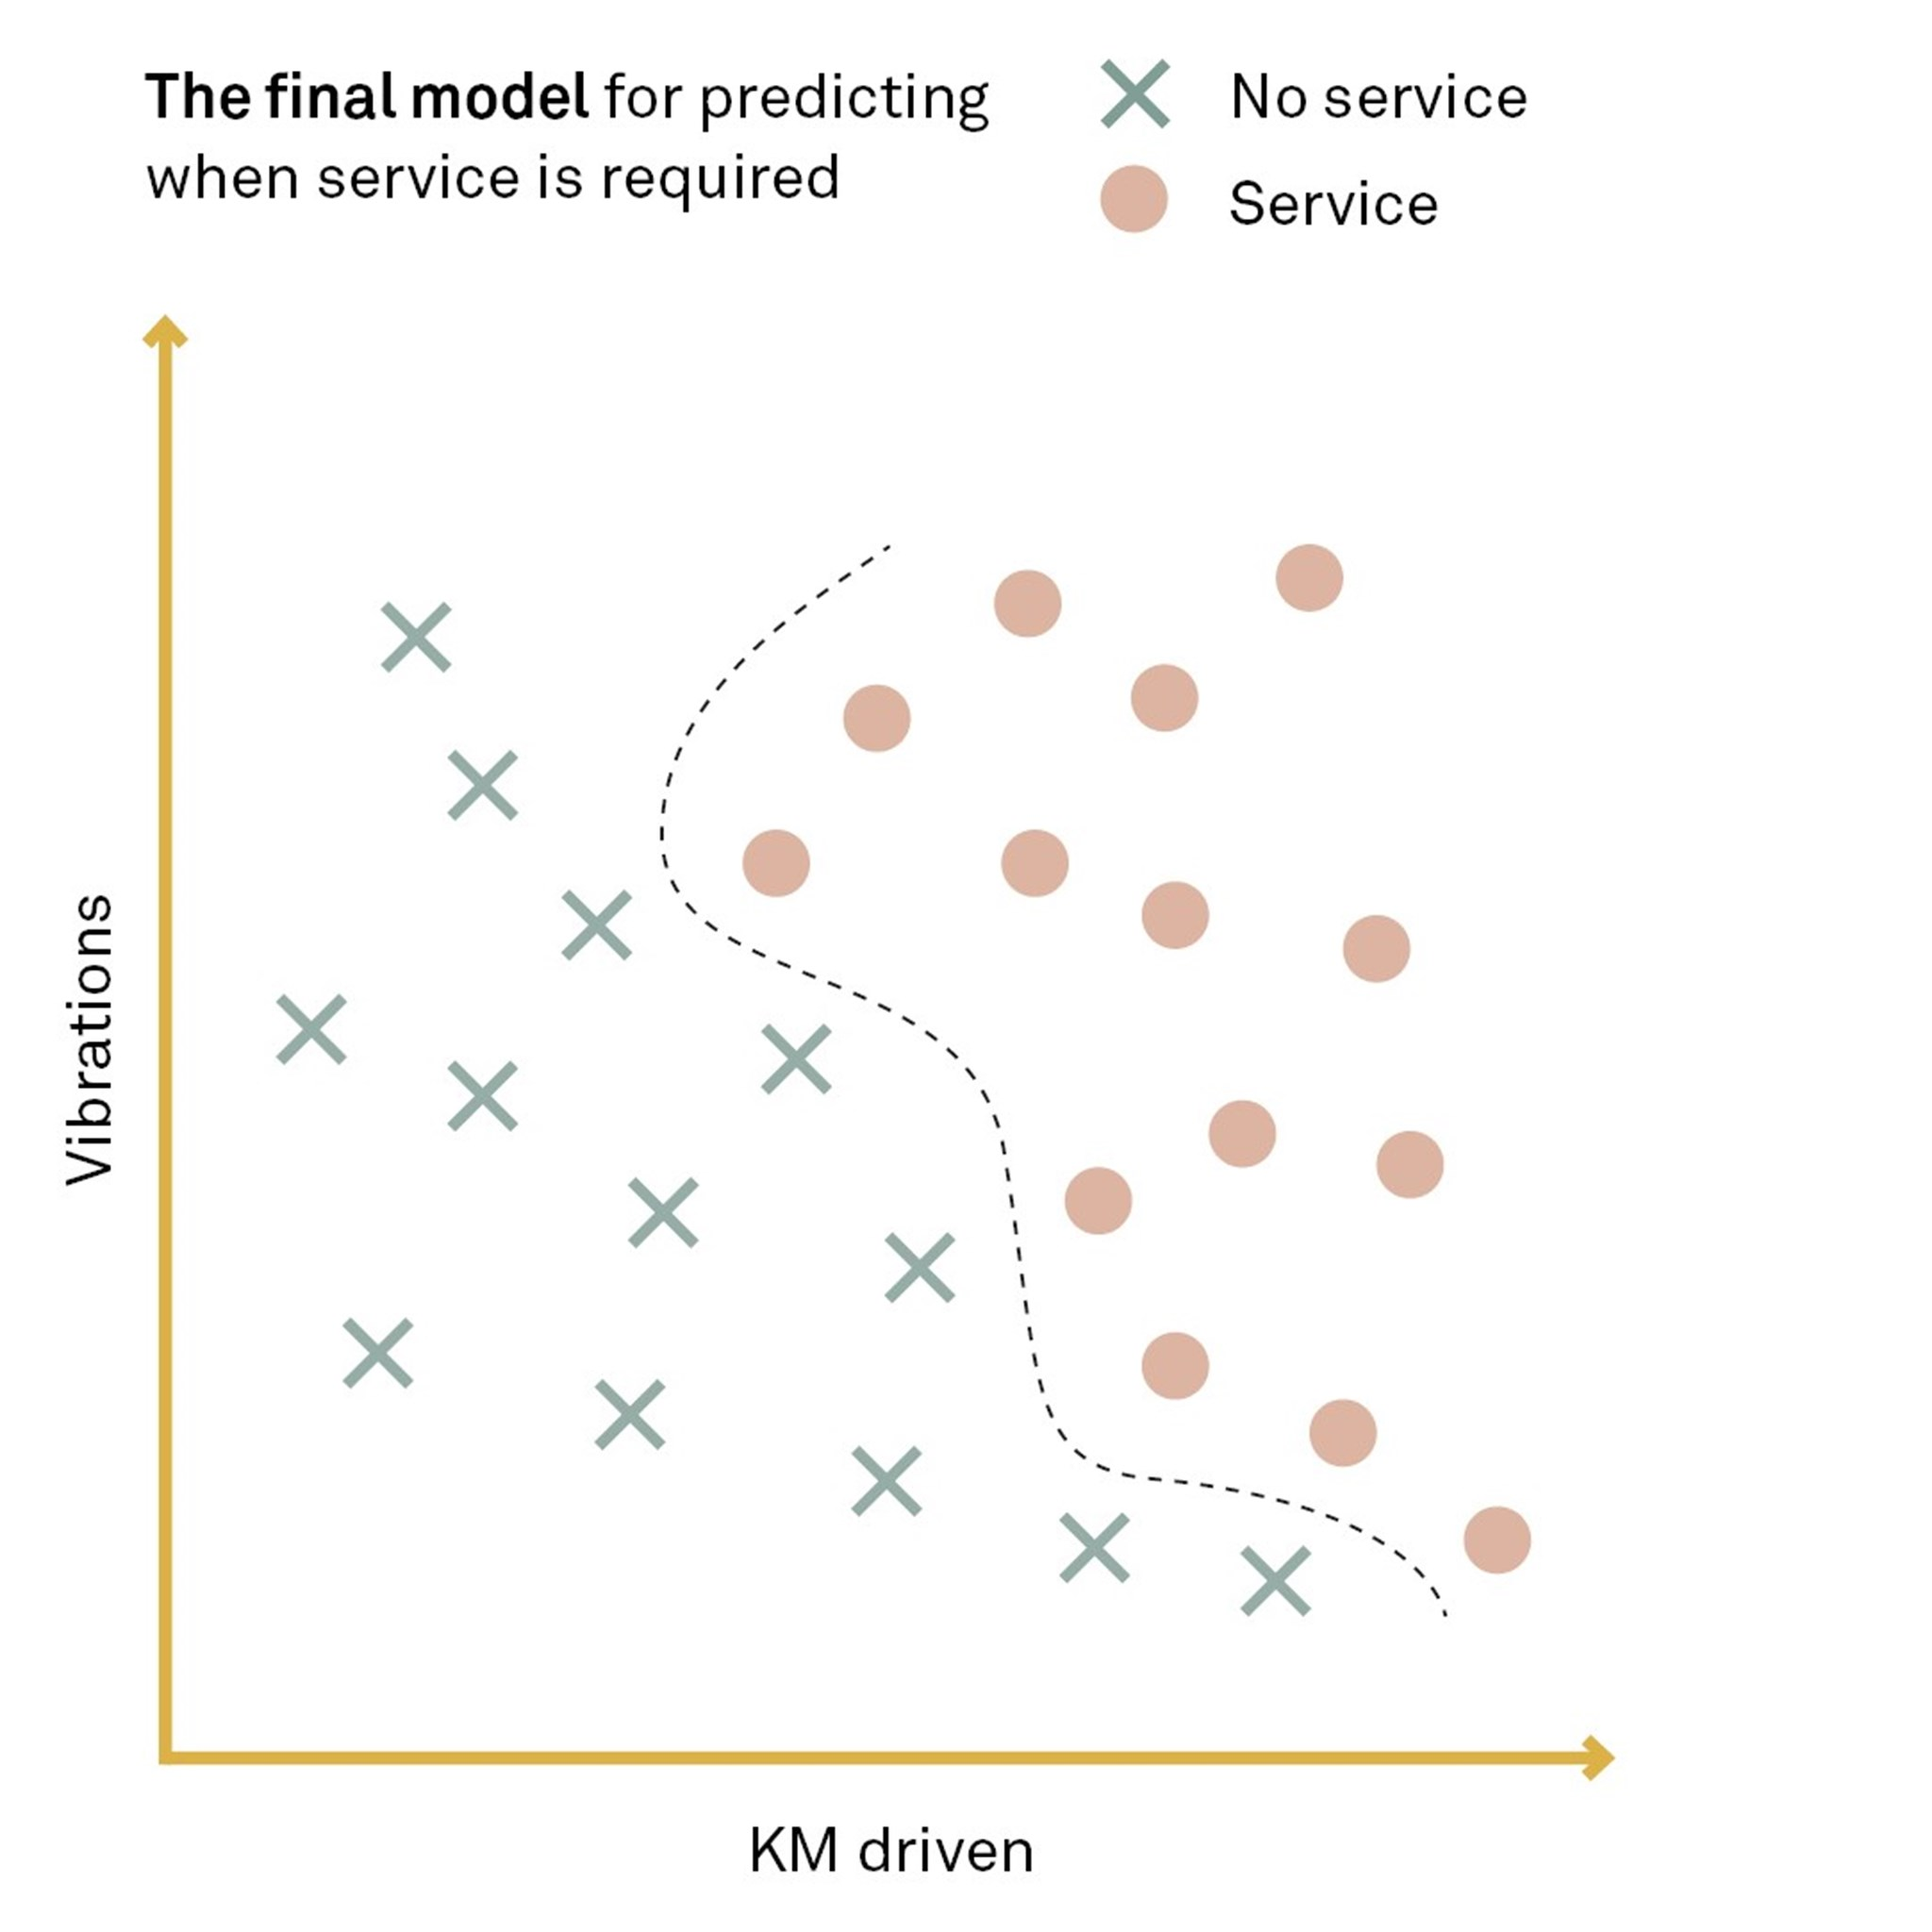 The final model for predicting when service is required